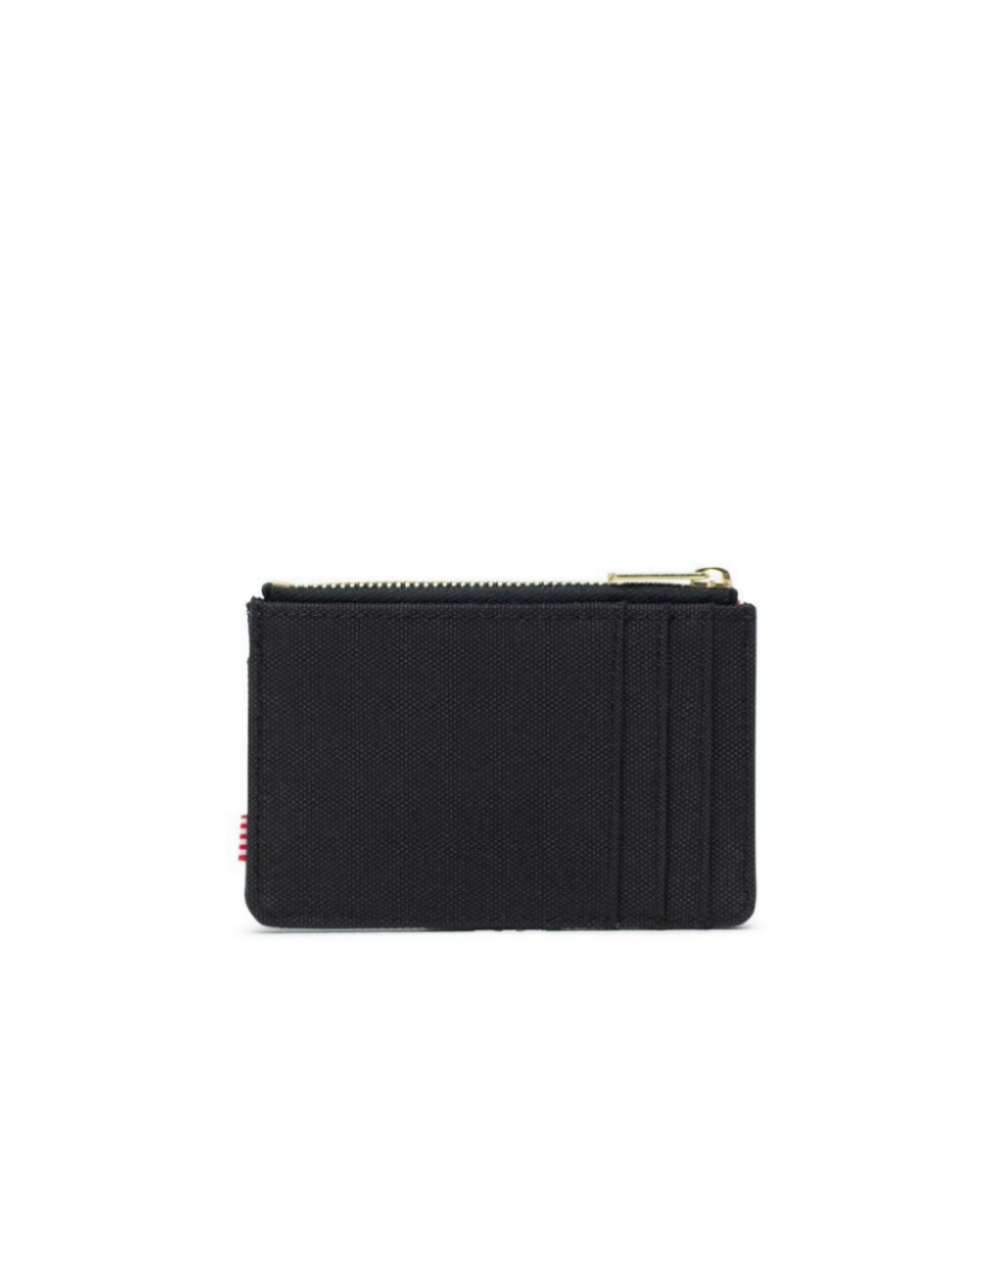 Herschel Supply Co Oscar RFID (10397-00001) Black